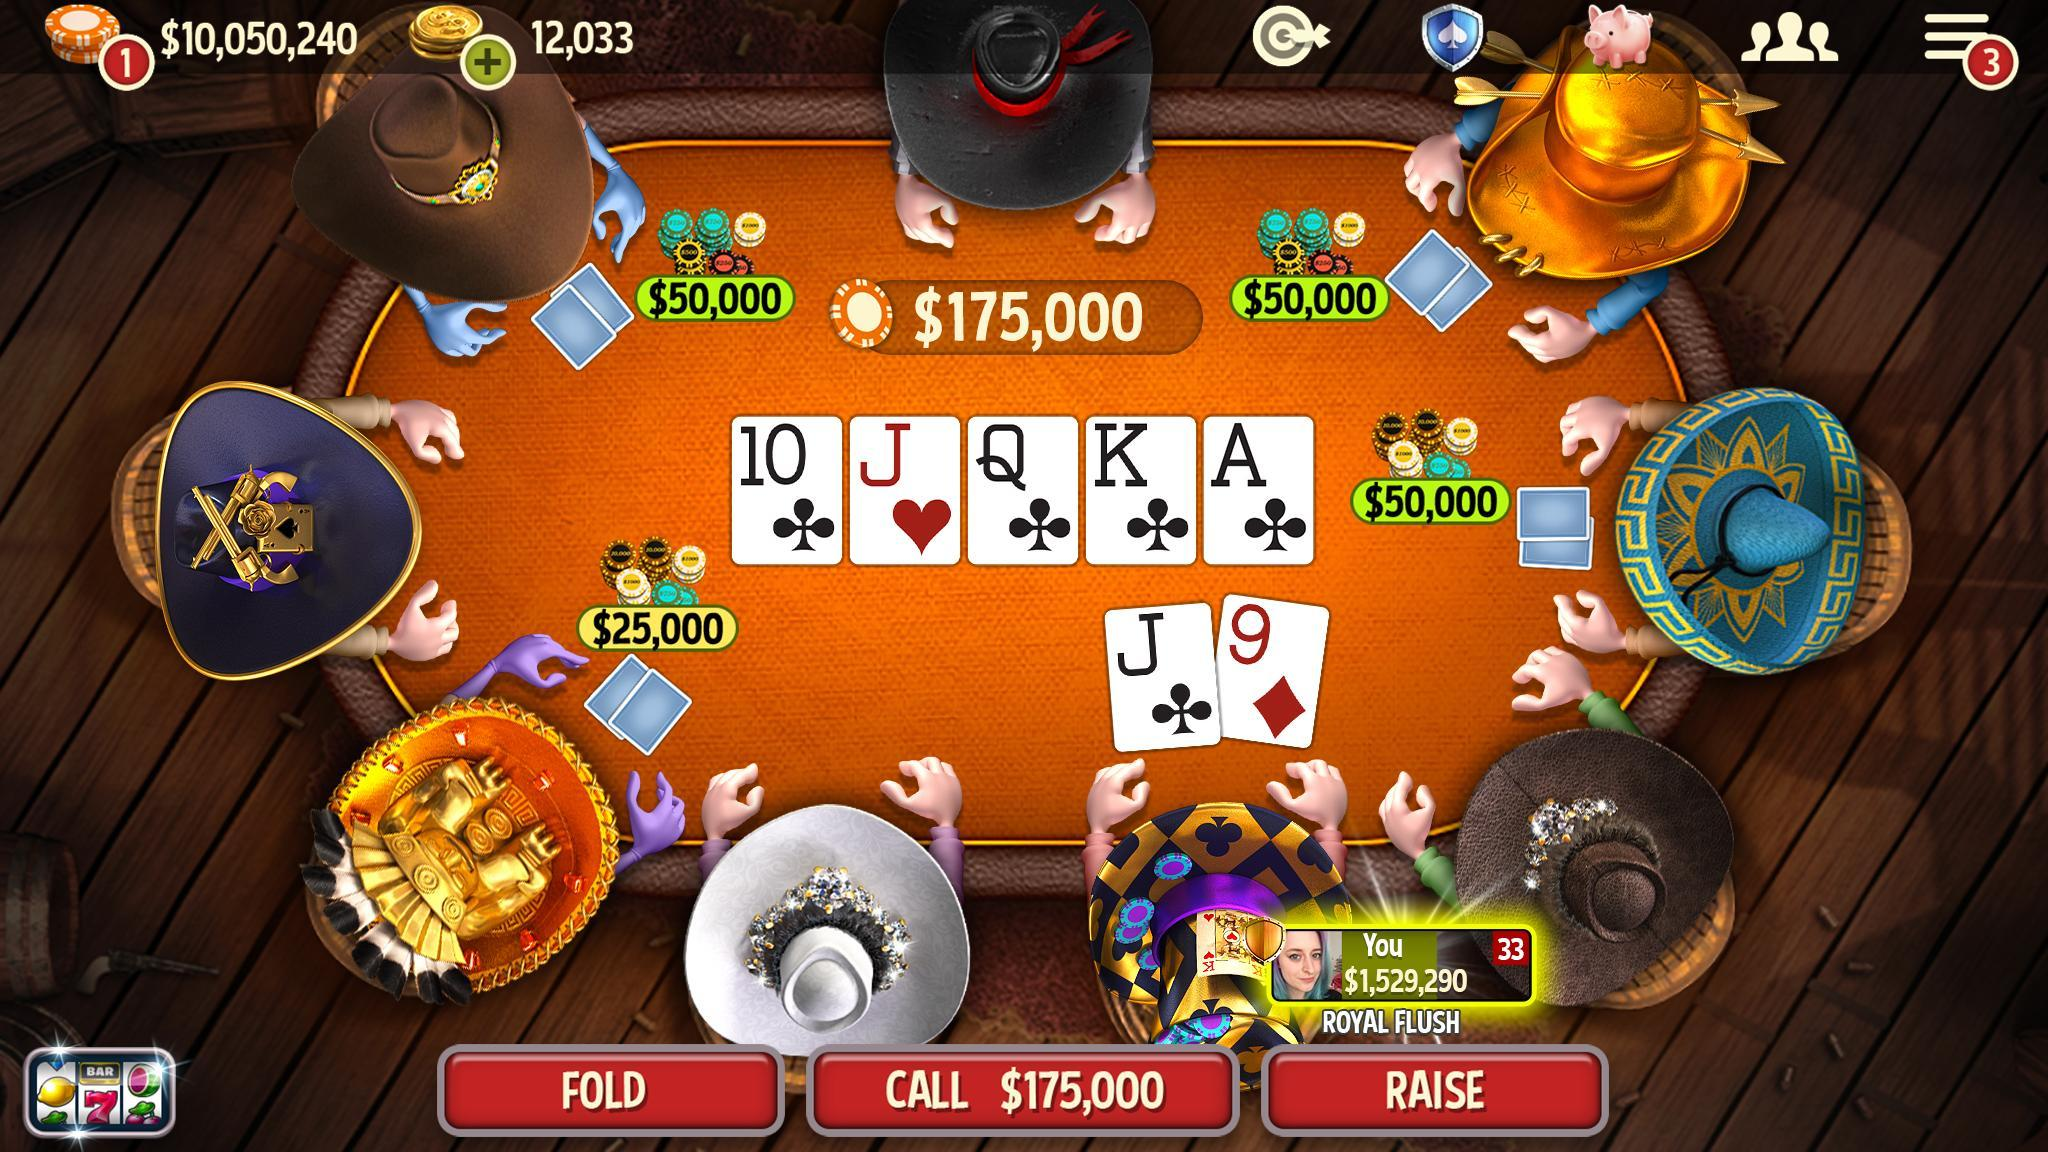 Governor Of Poker 3 Free Texas Holdem Card Games For Android Apk Download